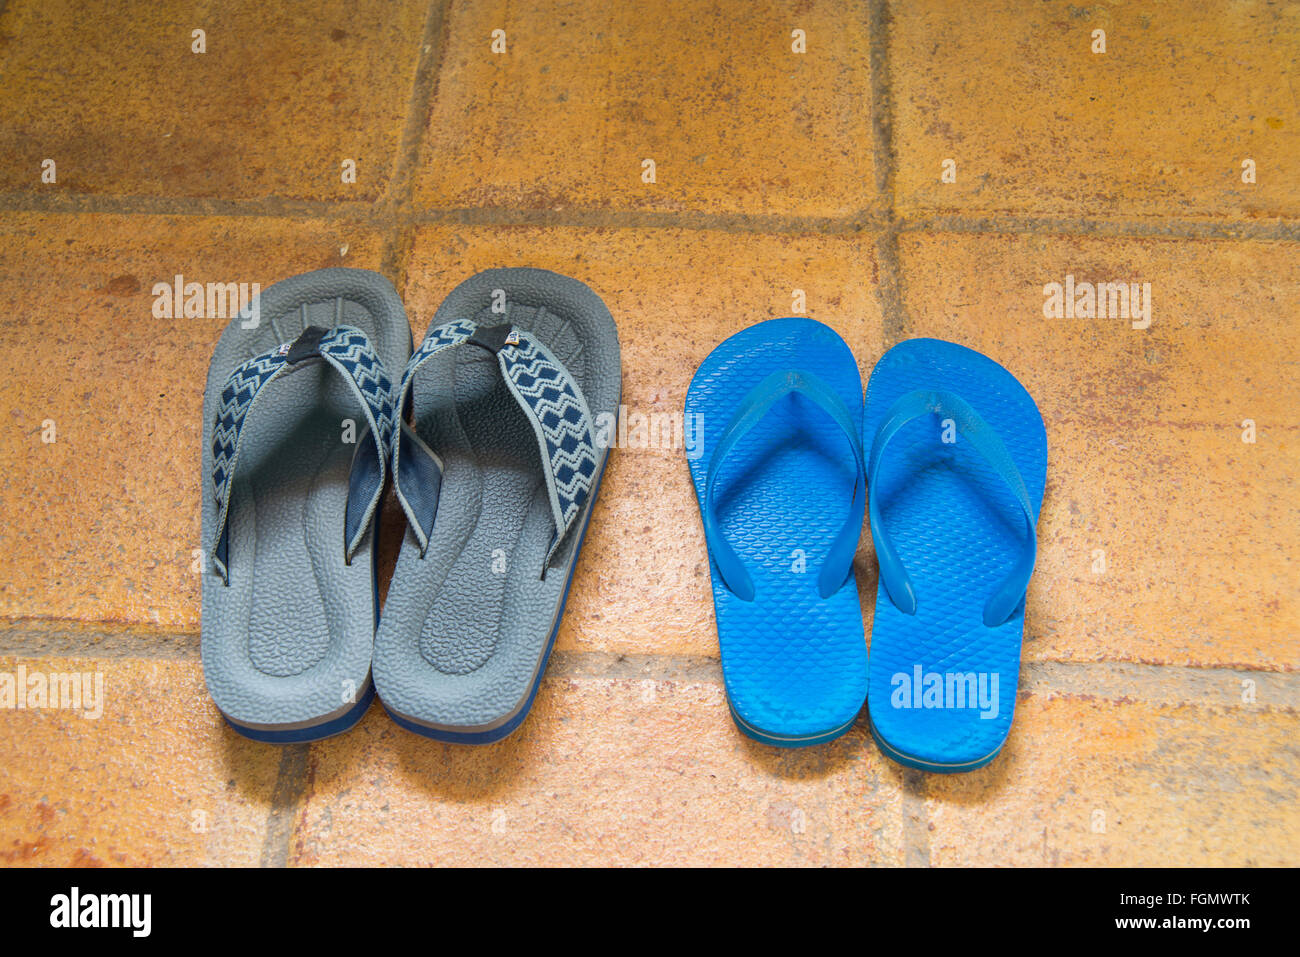 Two pairs of flip-flops. - Stock Image